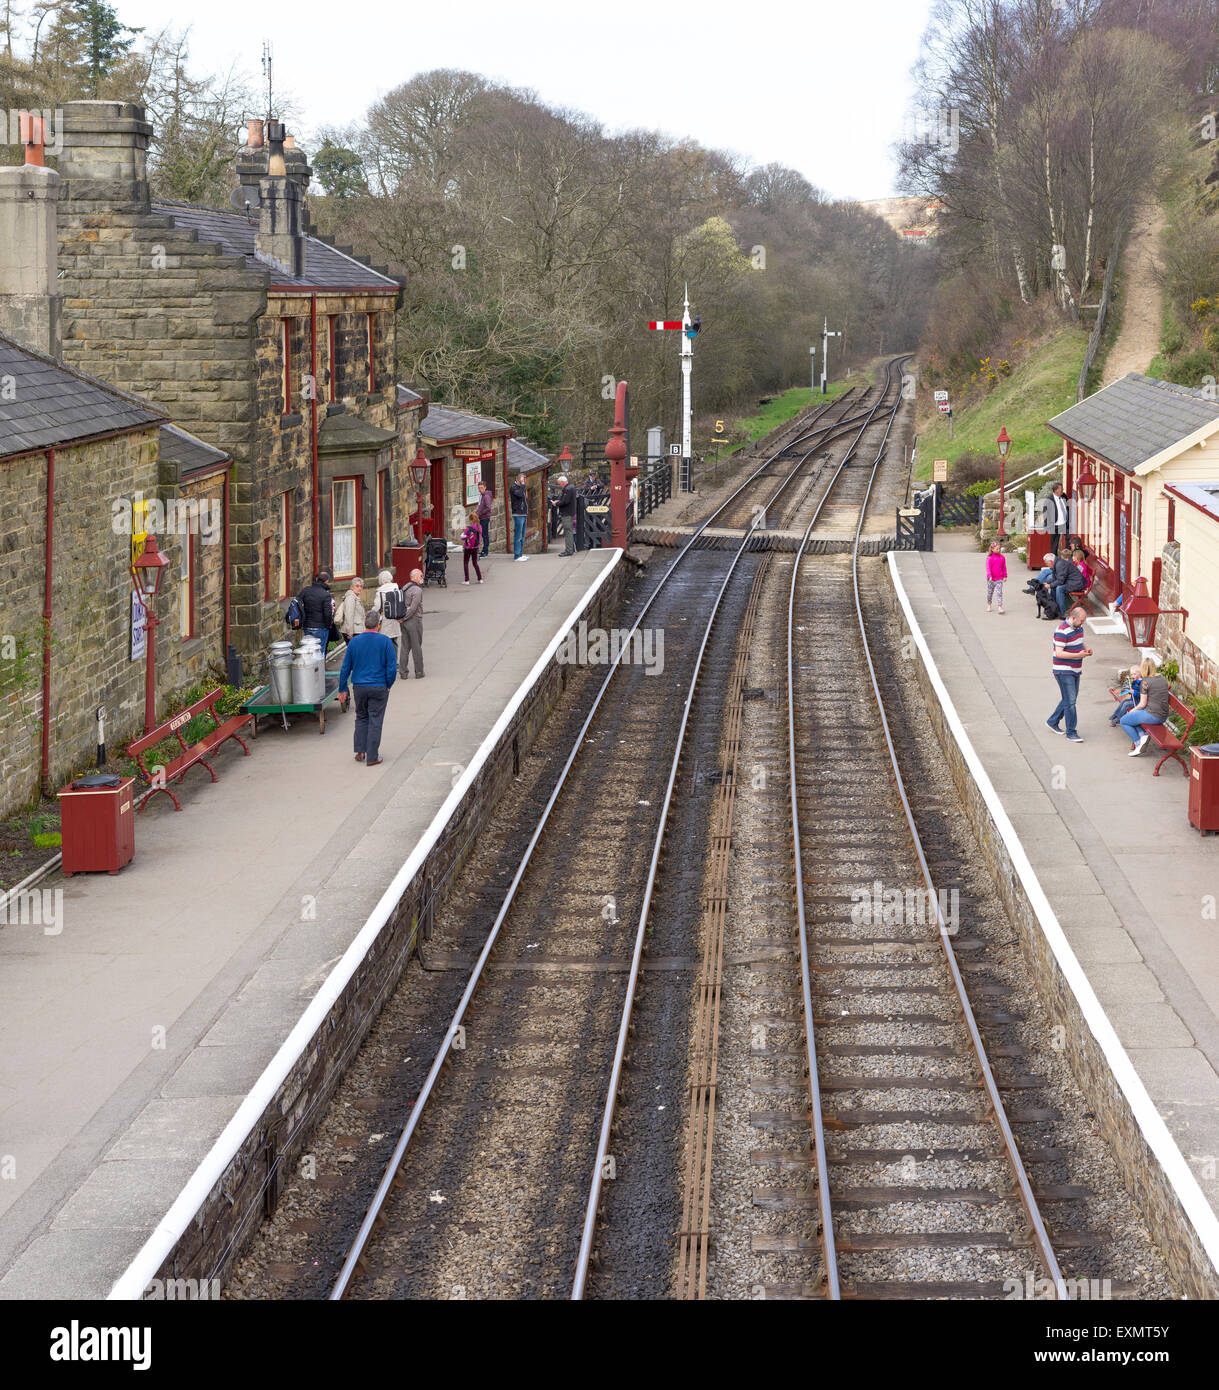 View from the bridge, overlooking the railway track at Goathland, North Eastern railway station - Stock Image